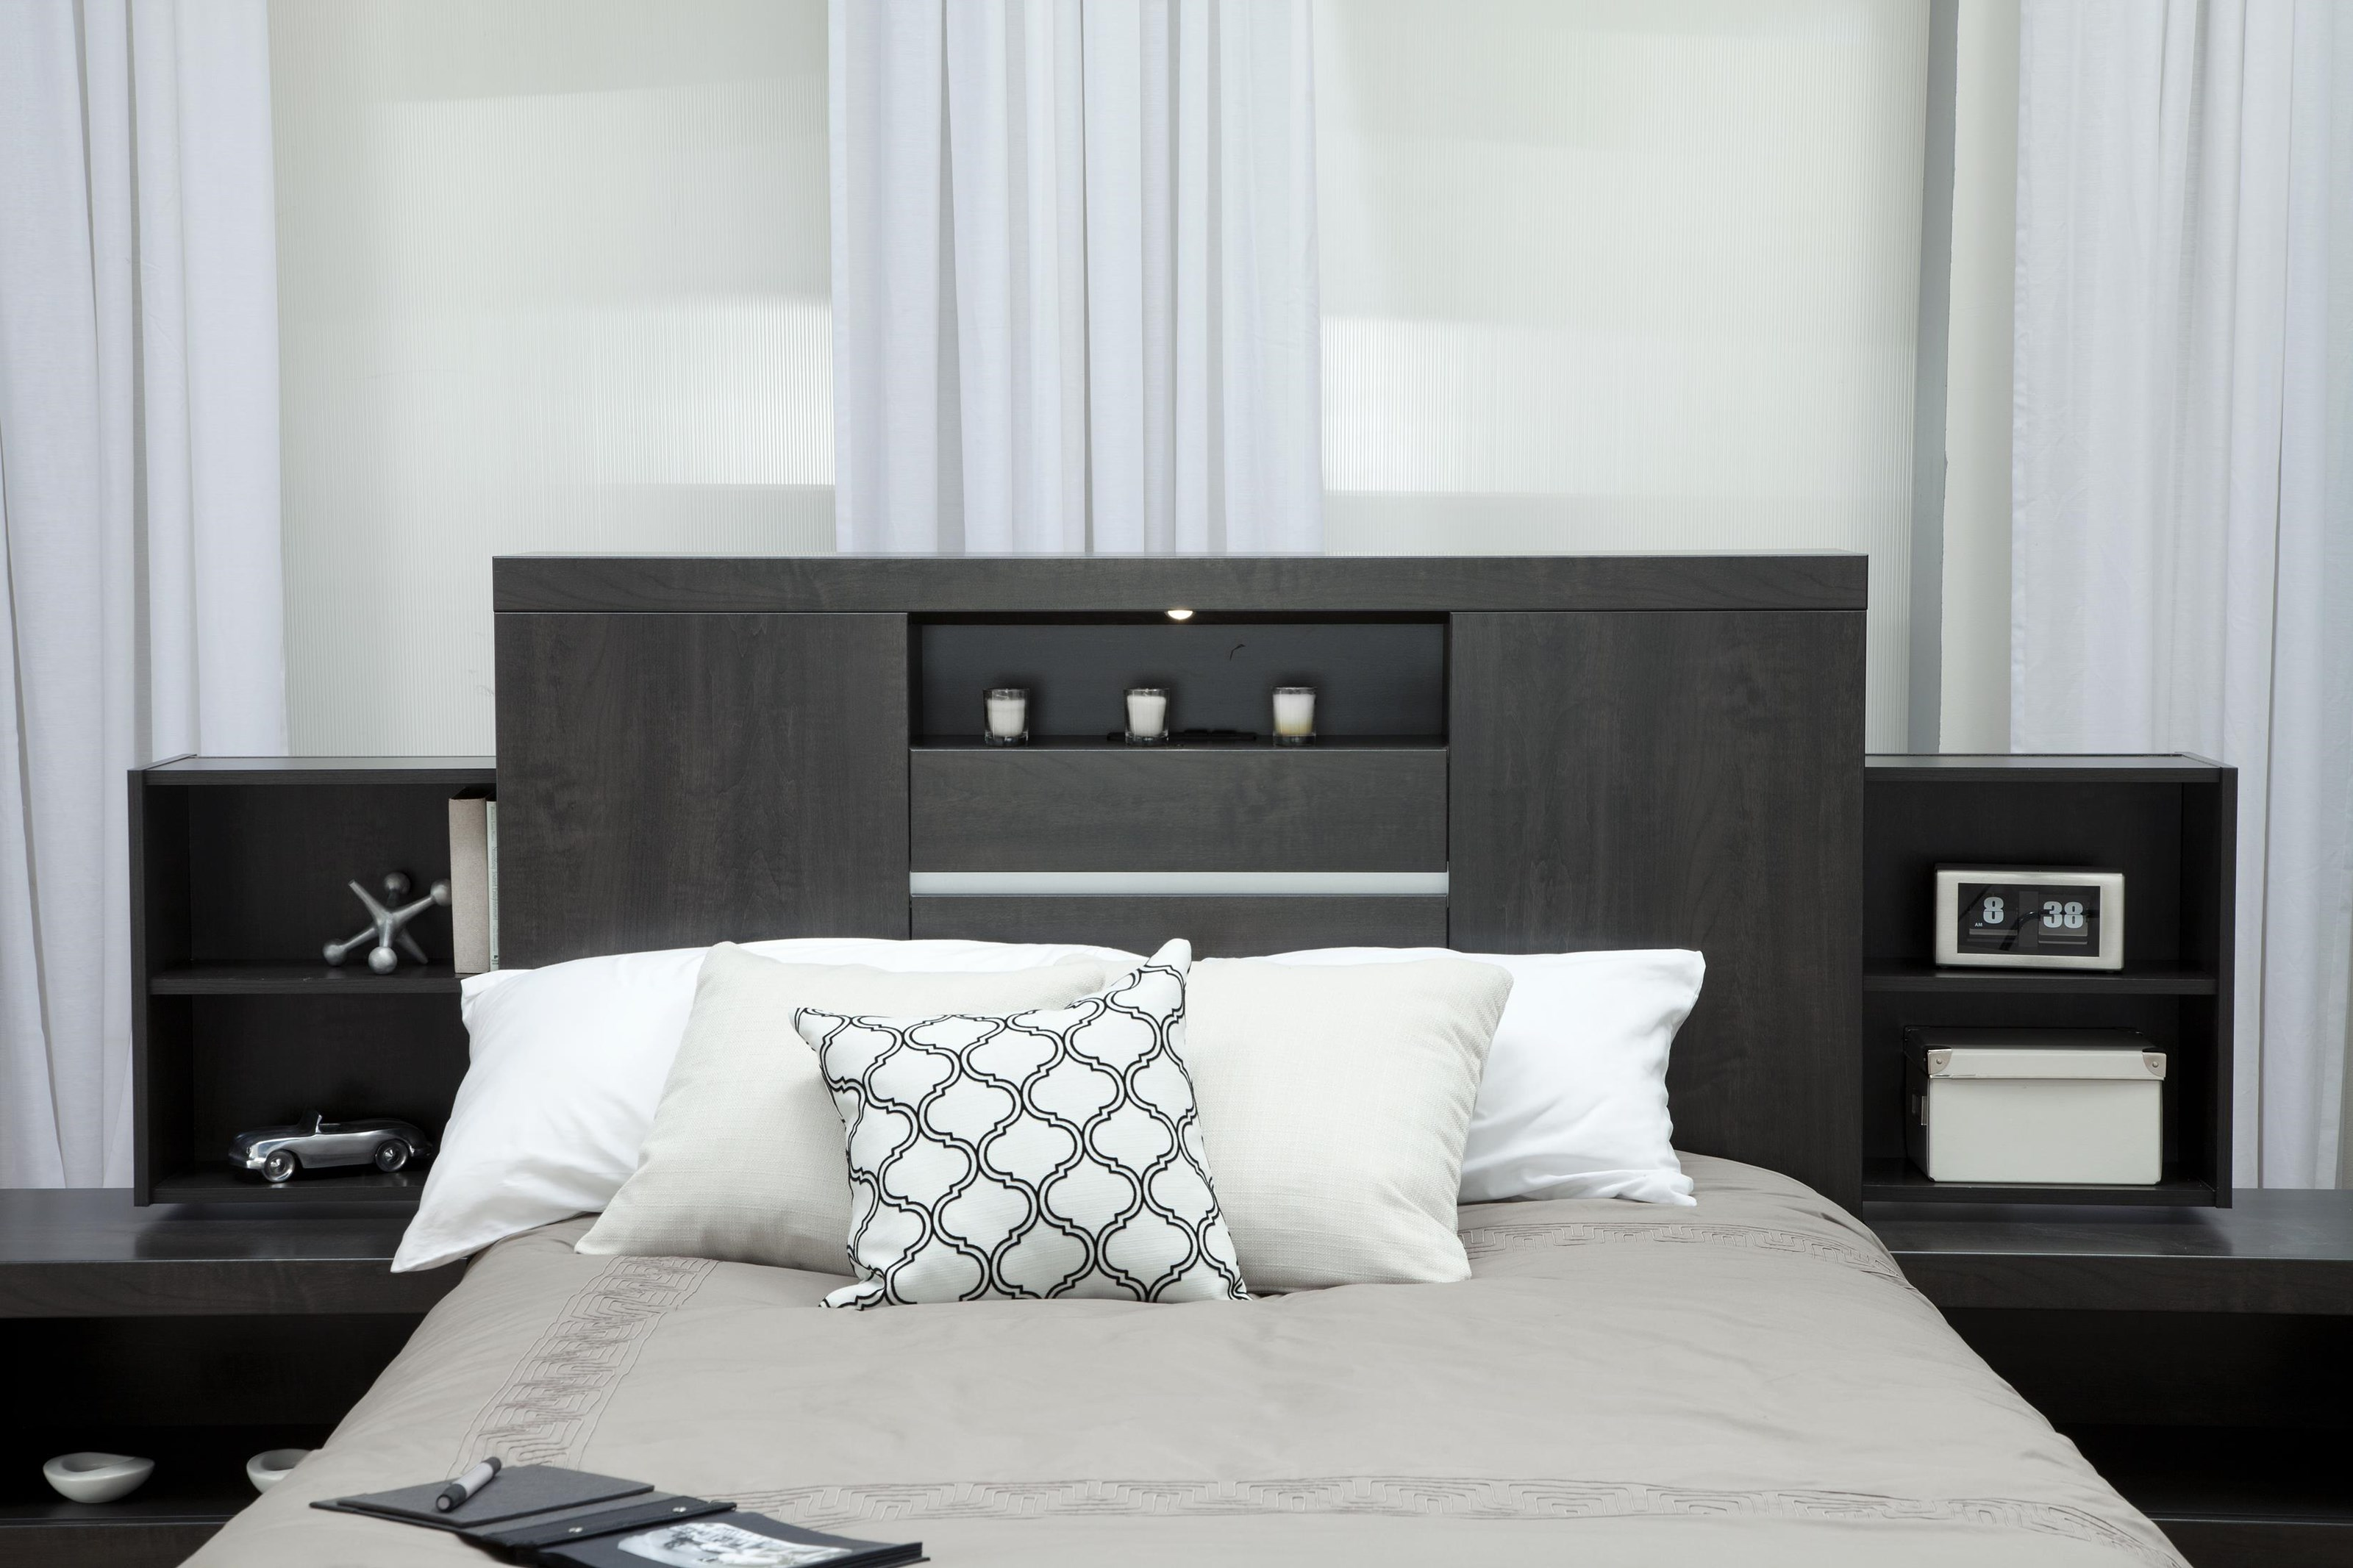 534 Captain Full size bed by Defehr at Stoney Creek Furniture